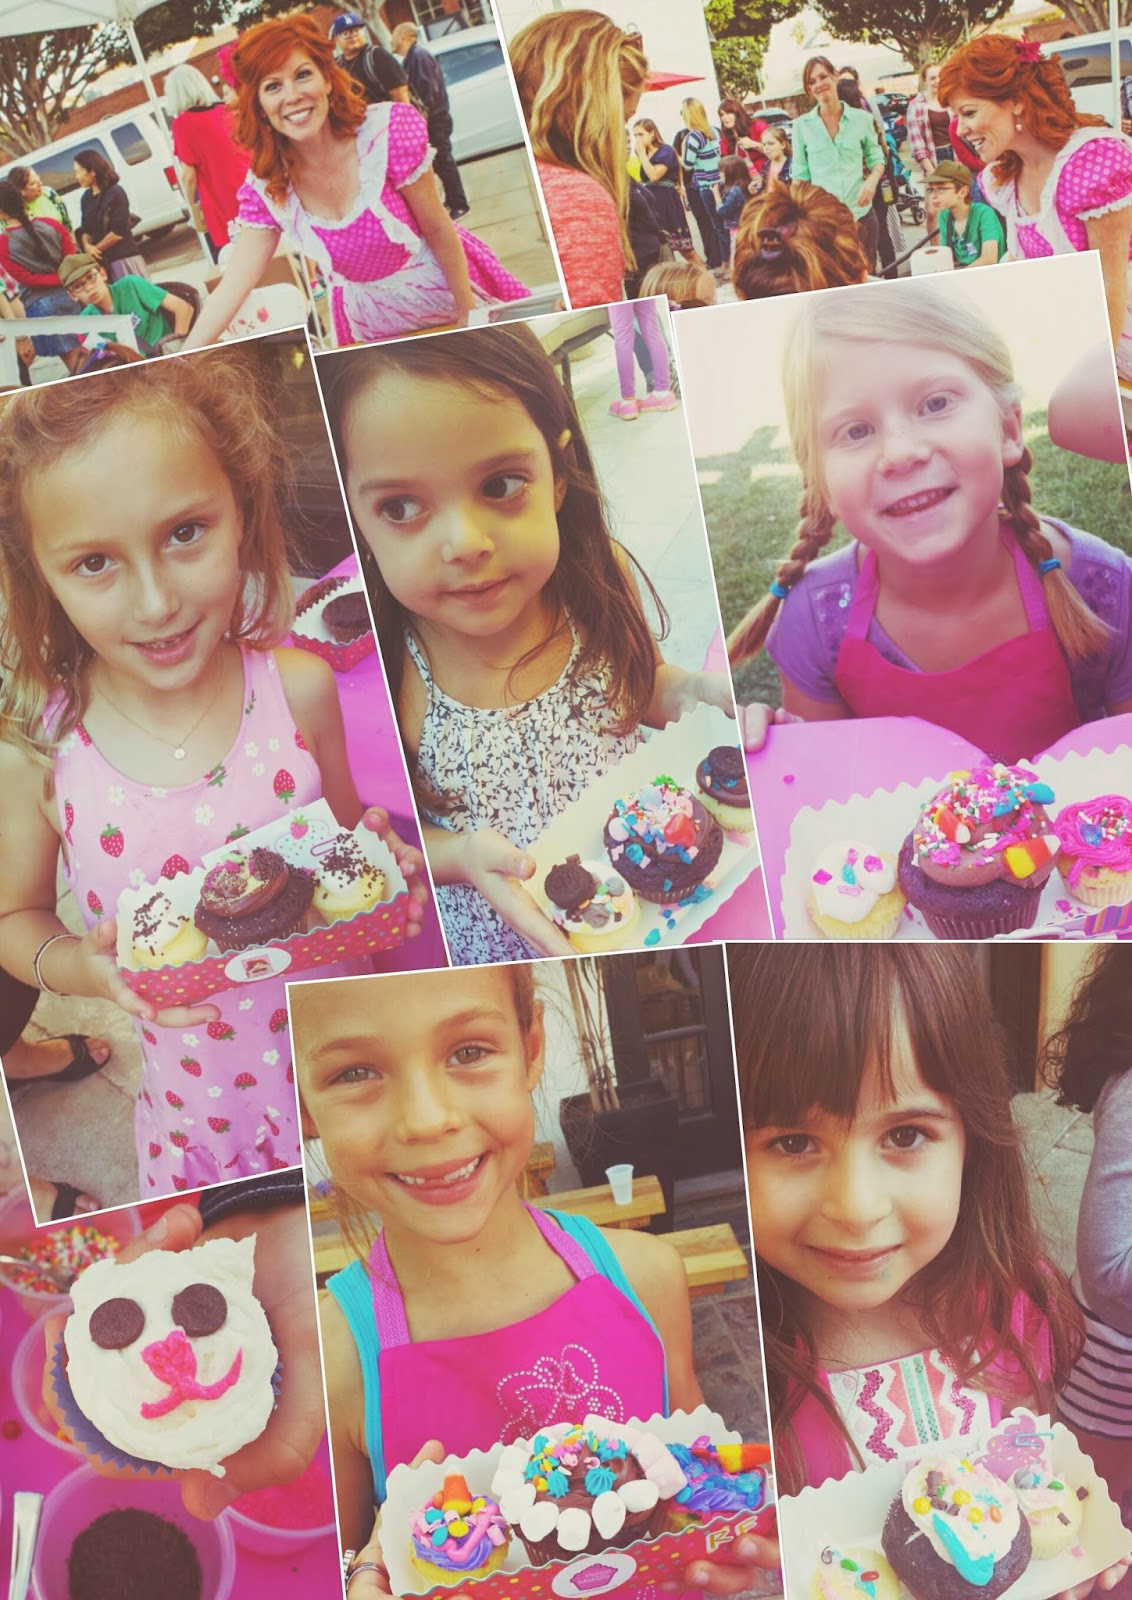 Baking With Melissa Parties In Los Angeles For Kids And Teens